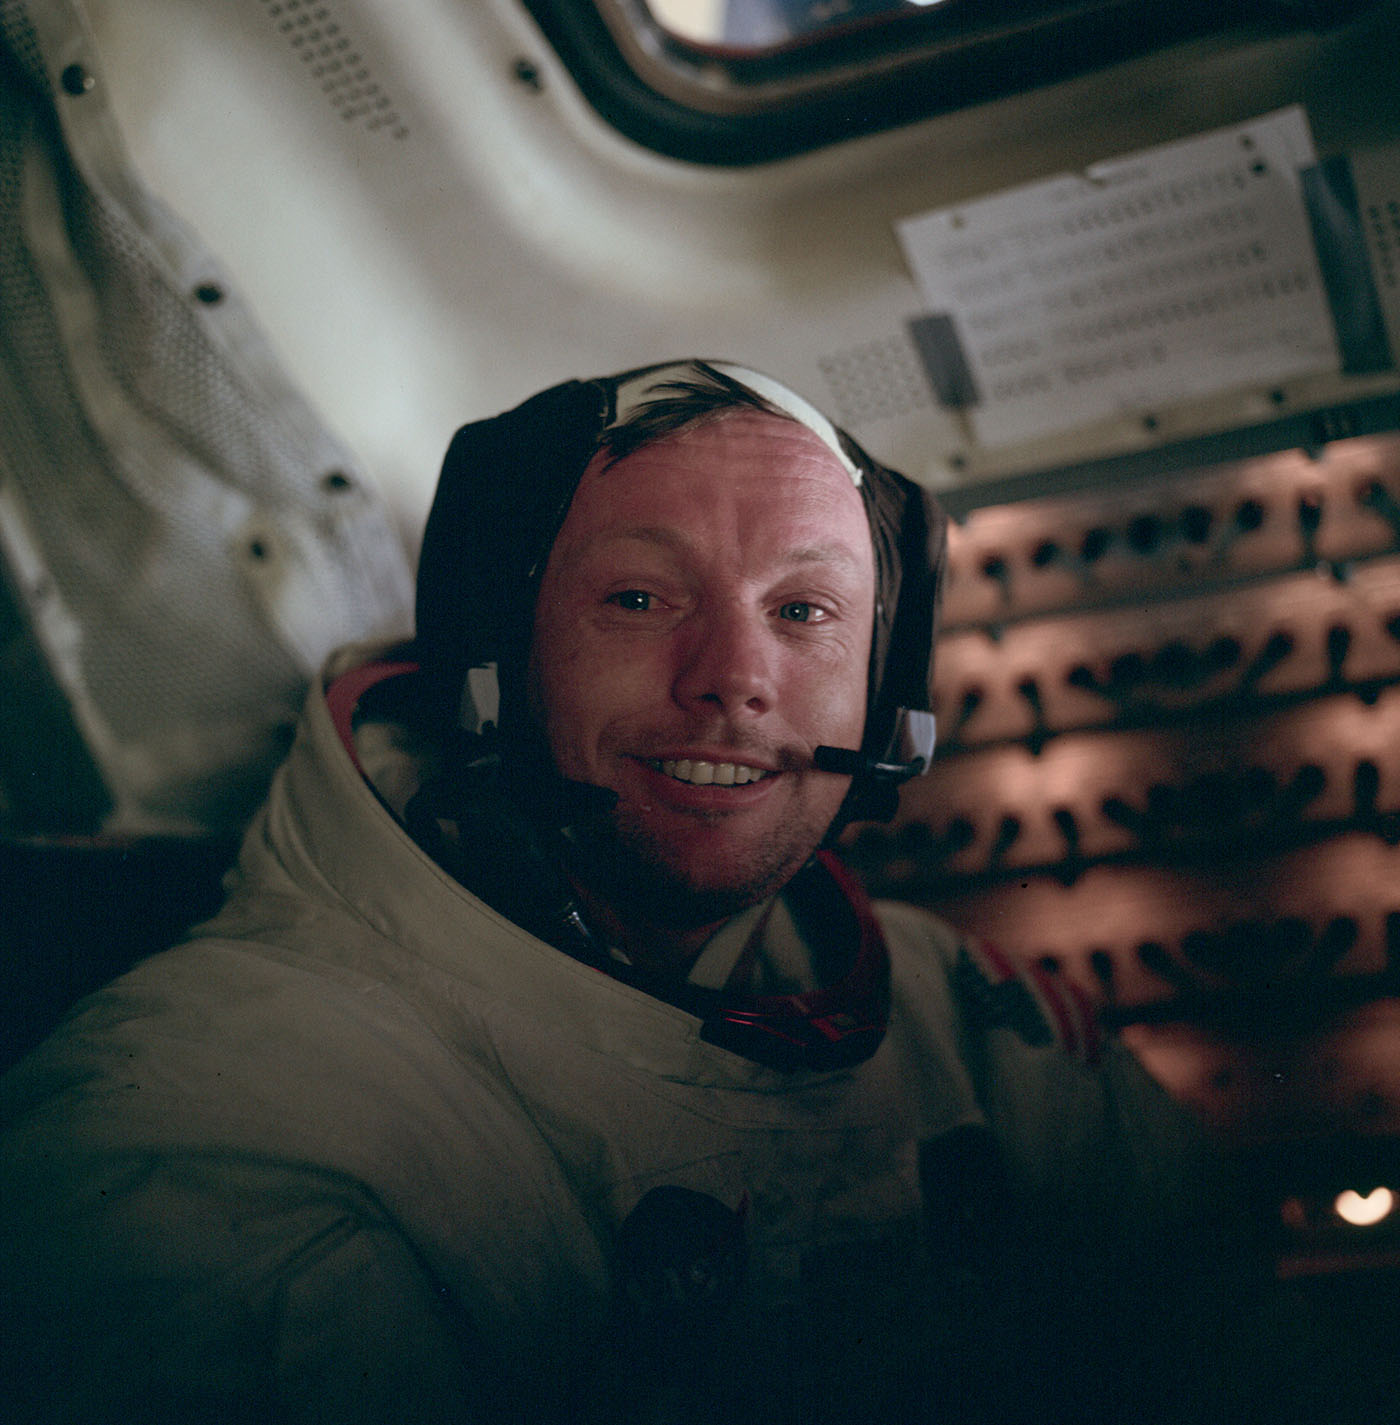 Neil Armstrong immediately after his, and mankind's, very first moon walk, 1969.